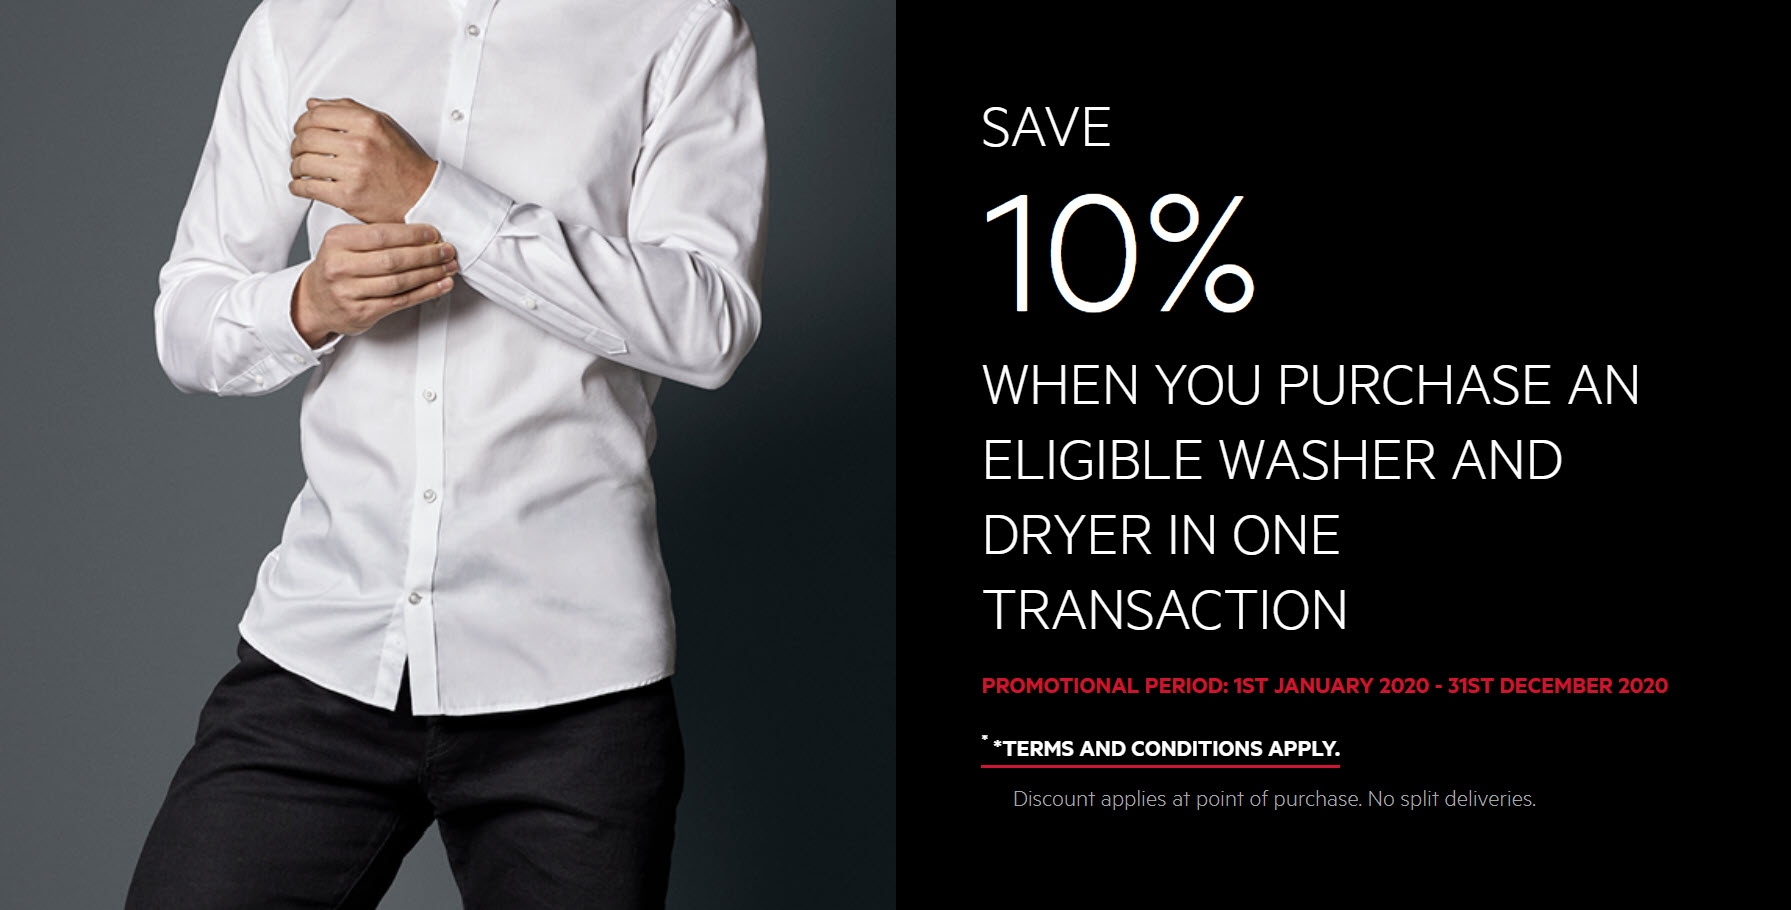 Save 10% When You Purchase An Eligible AEG Washer And Dryer